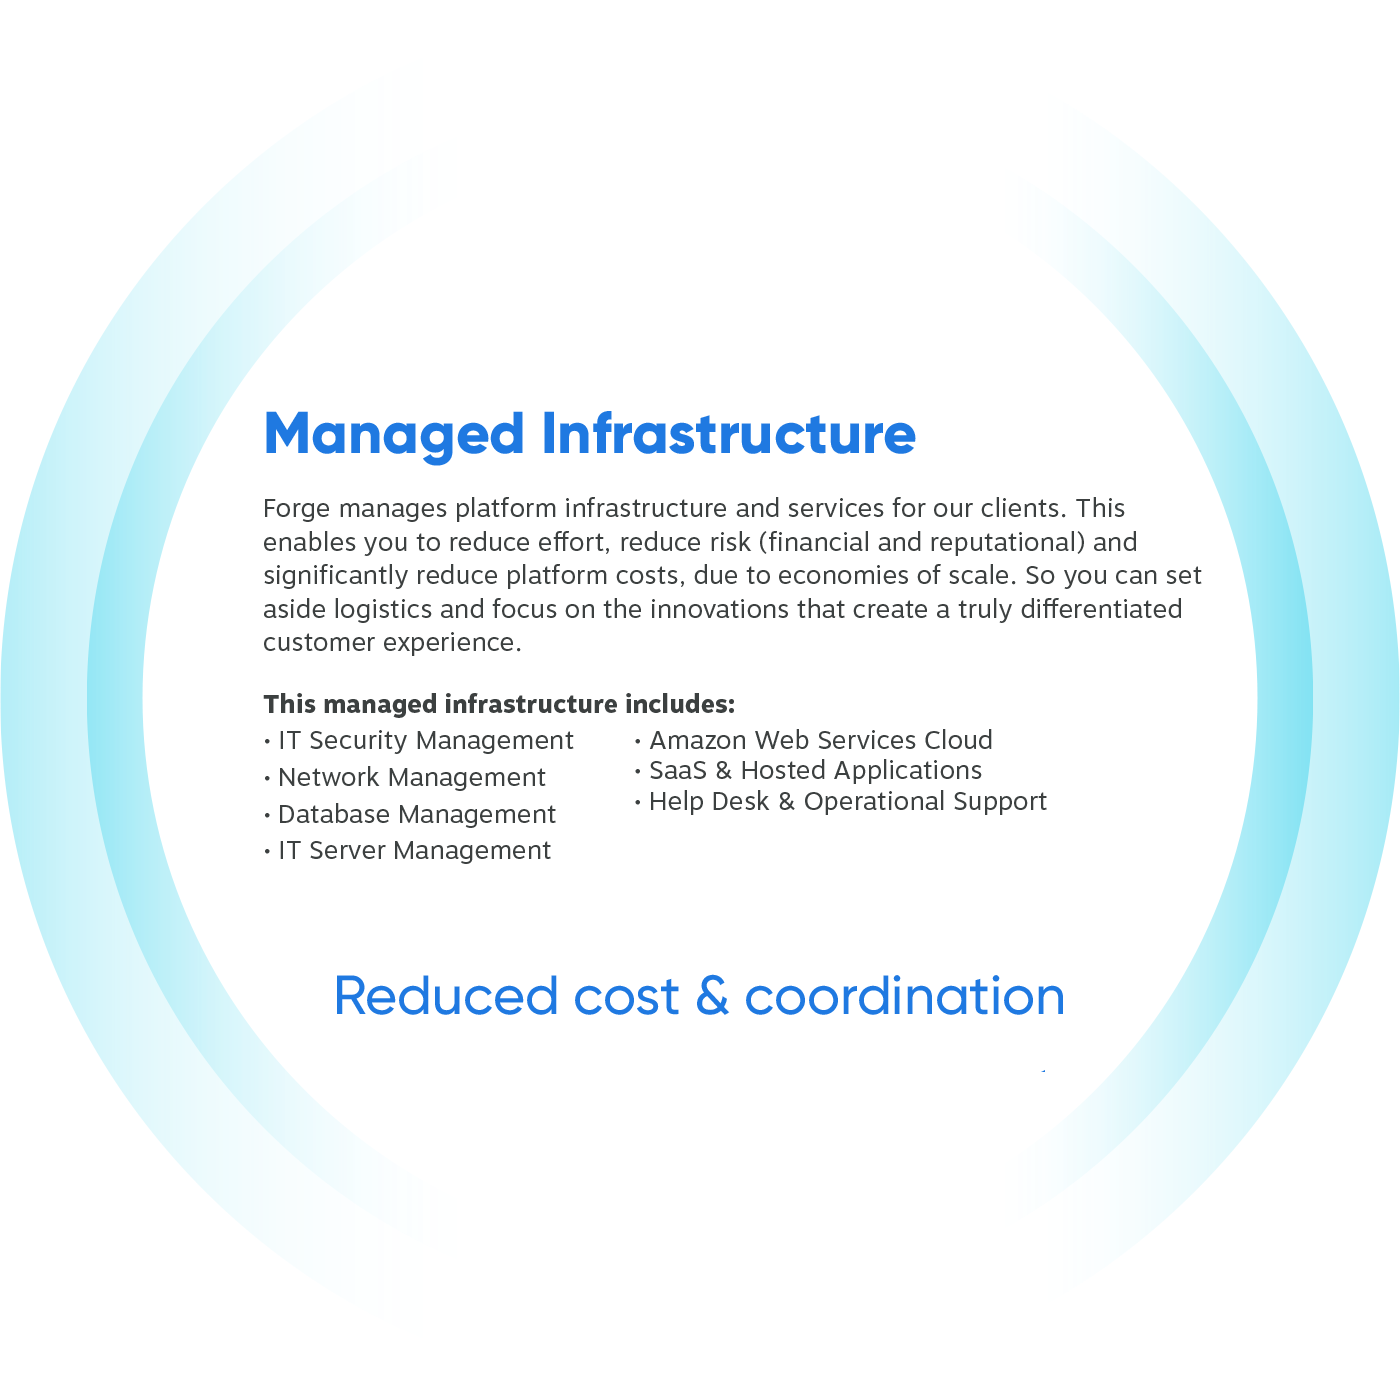 Managed Infrastructure Layer